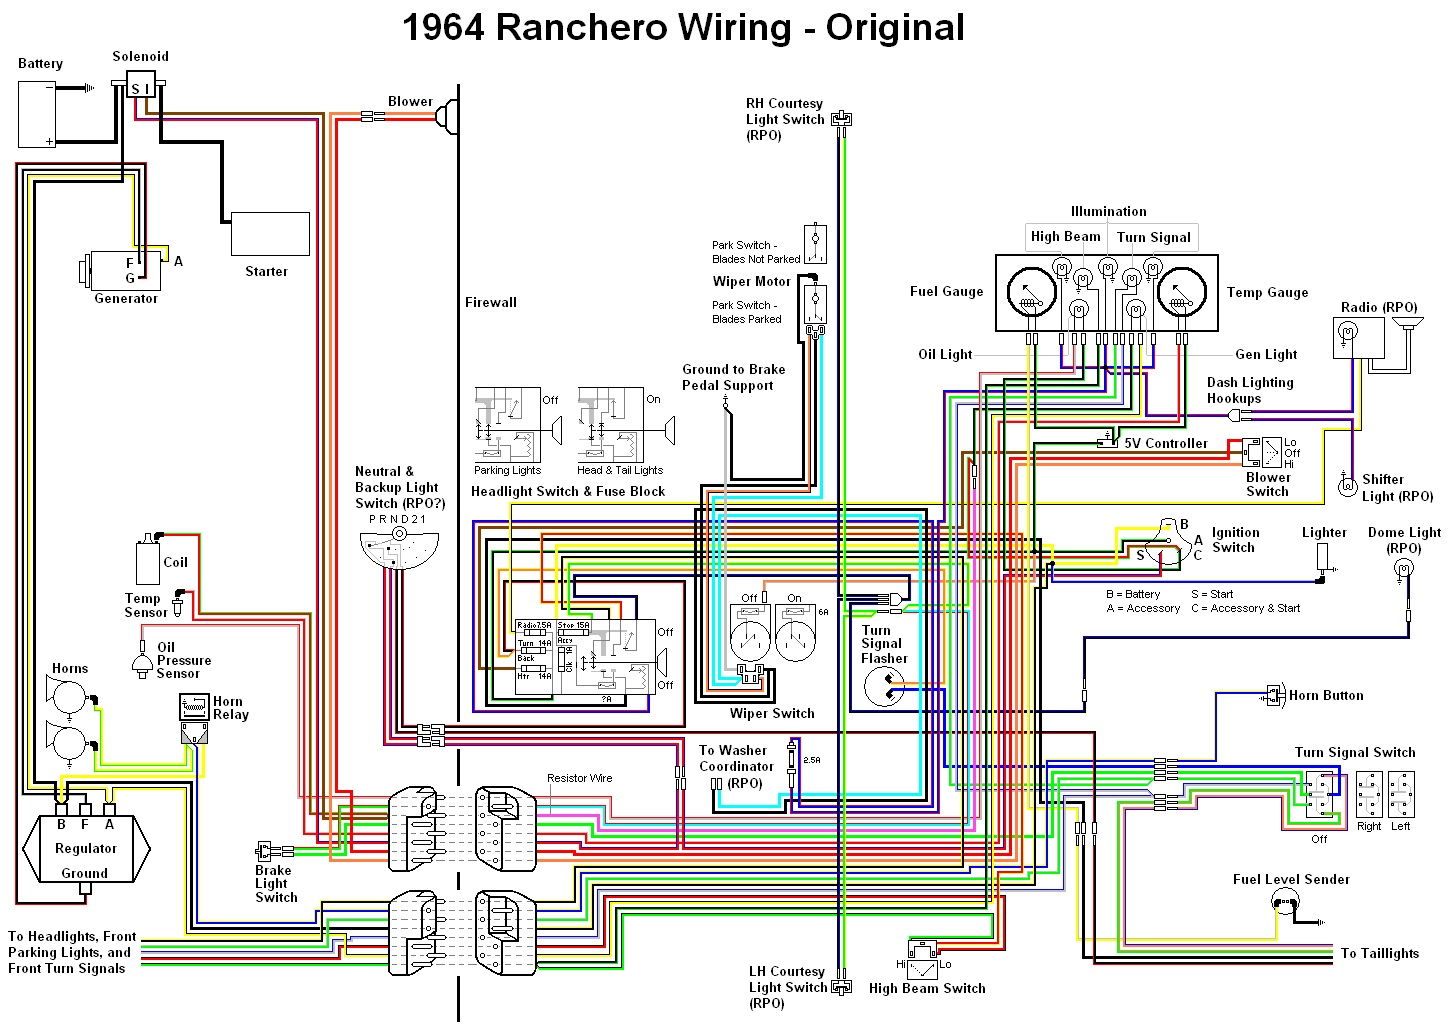 hight resolution of 1964 ford wiring diagram wiring diagram data today1964 ford wiring diagram wiring diagrams the 1964 ford